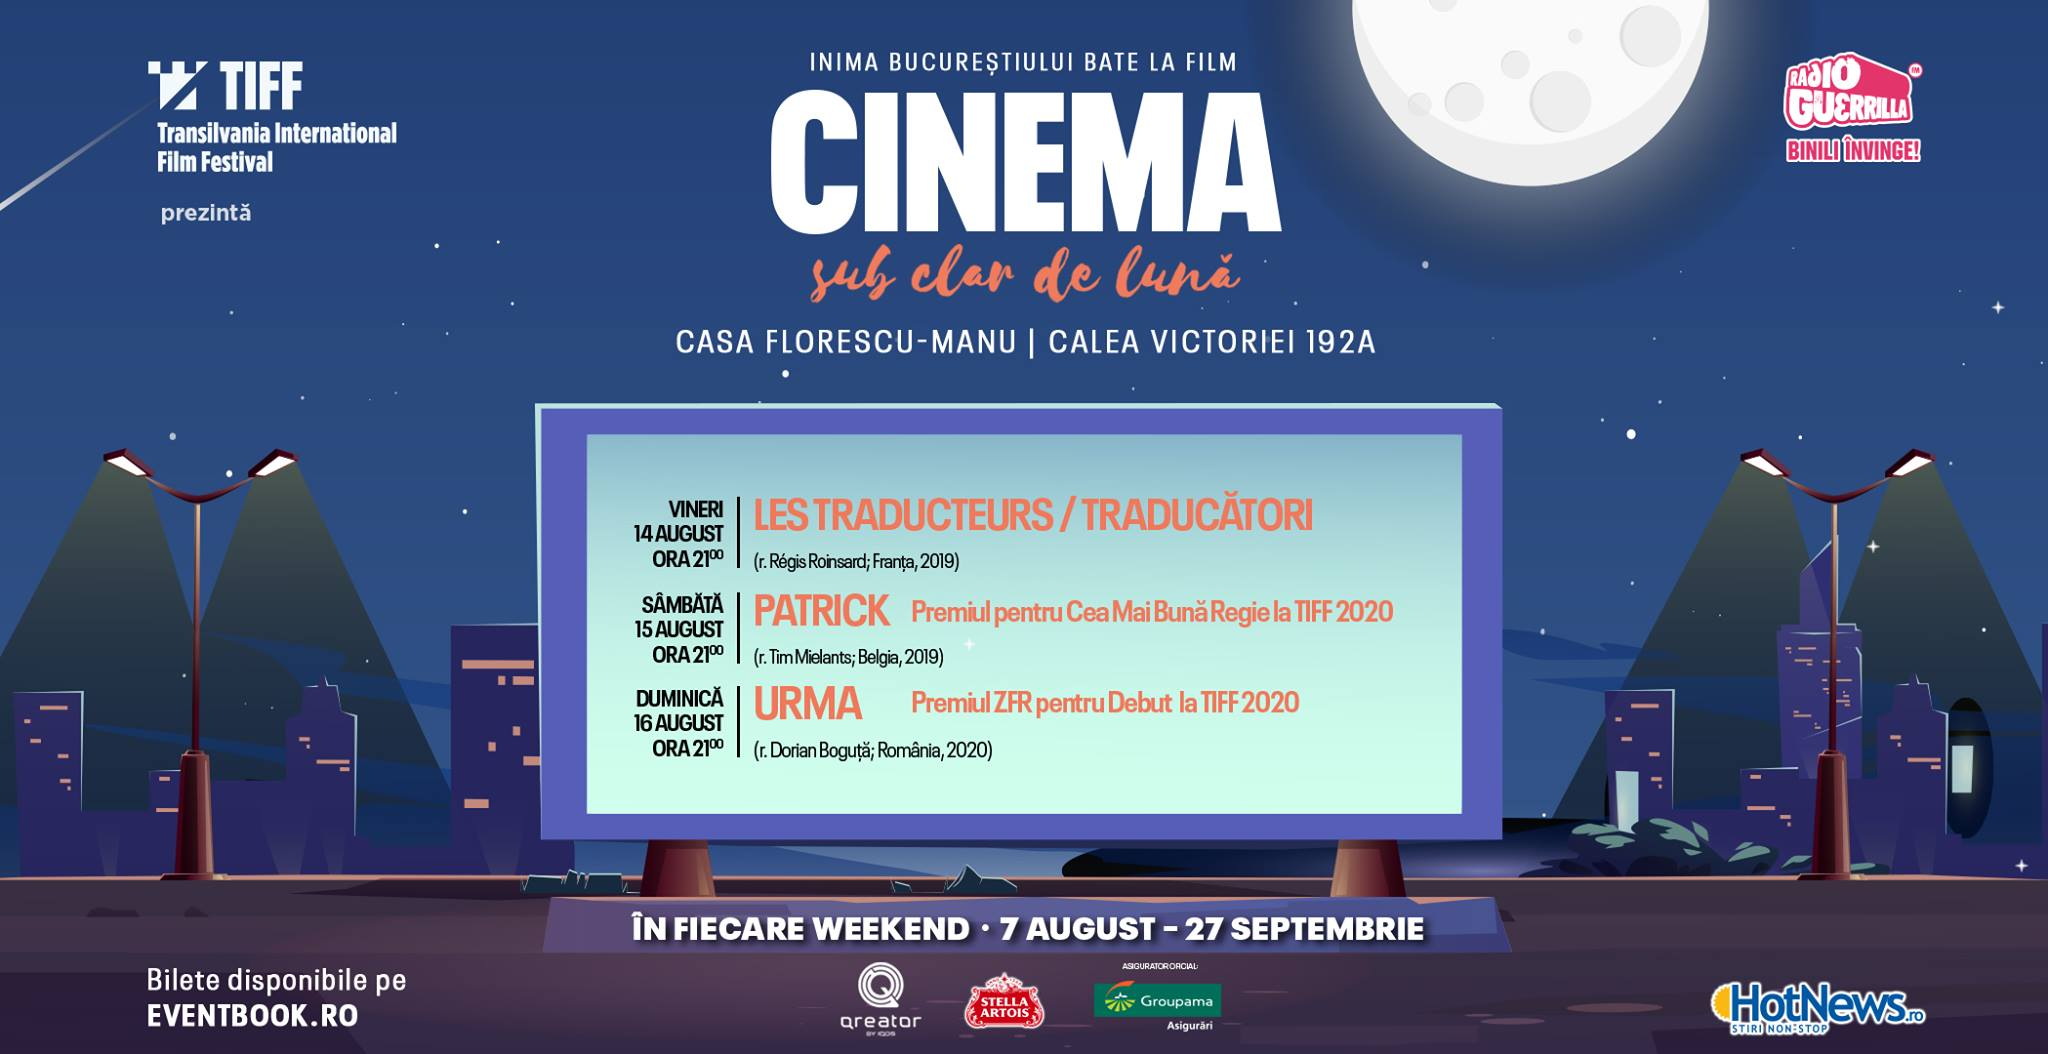 weekend 14-16 august cinema sub clar de luna 2